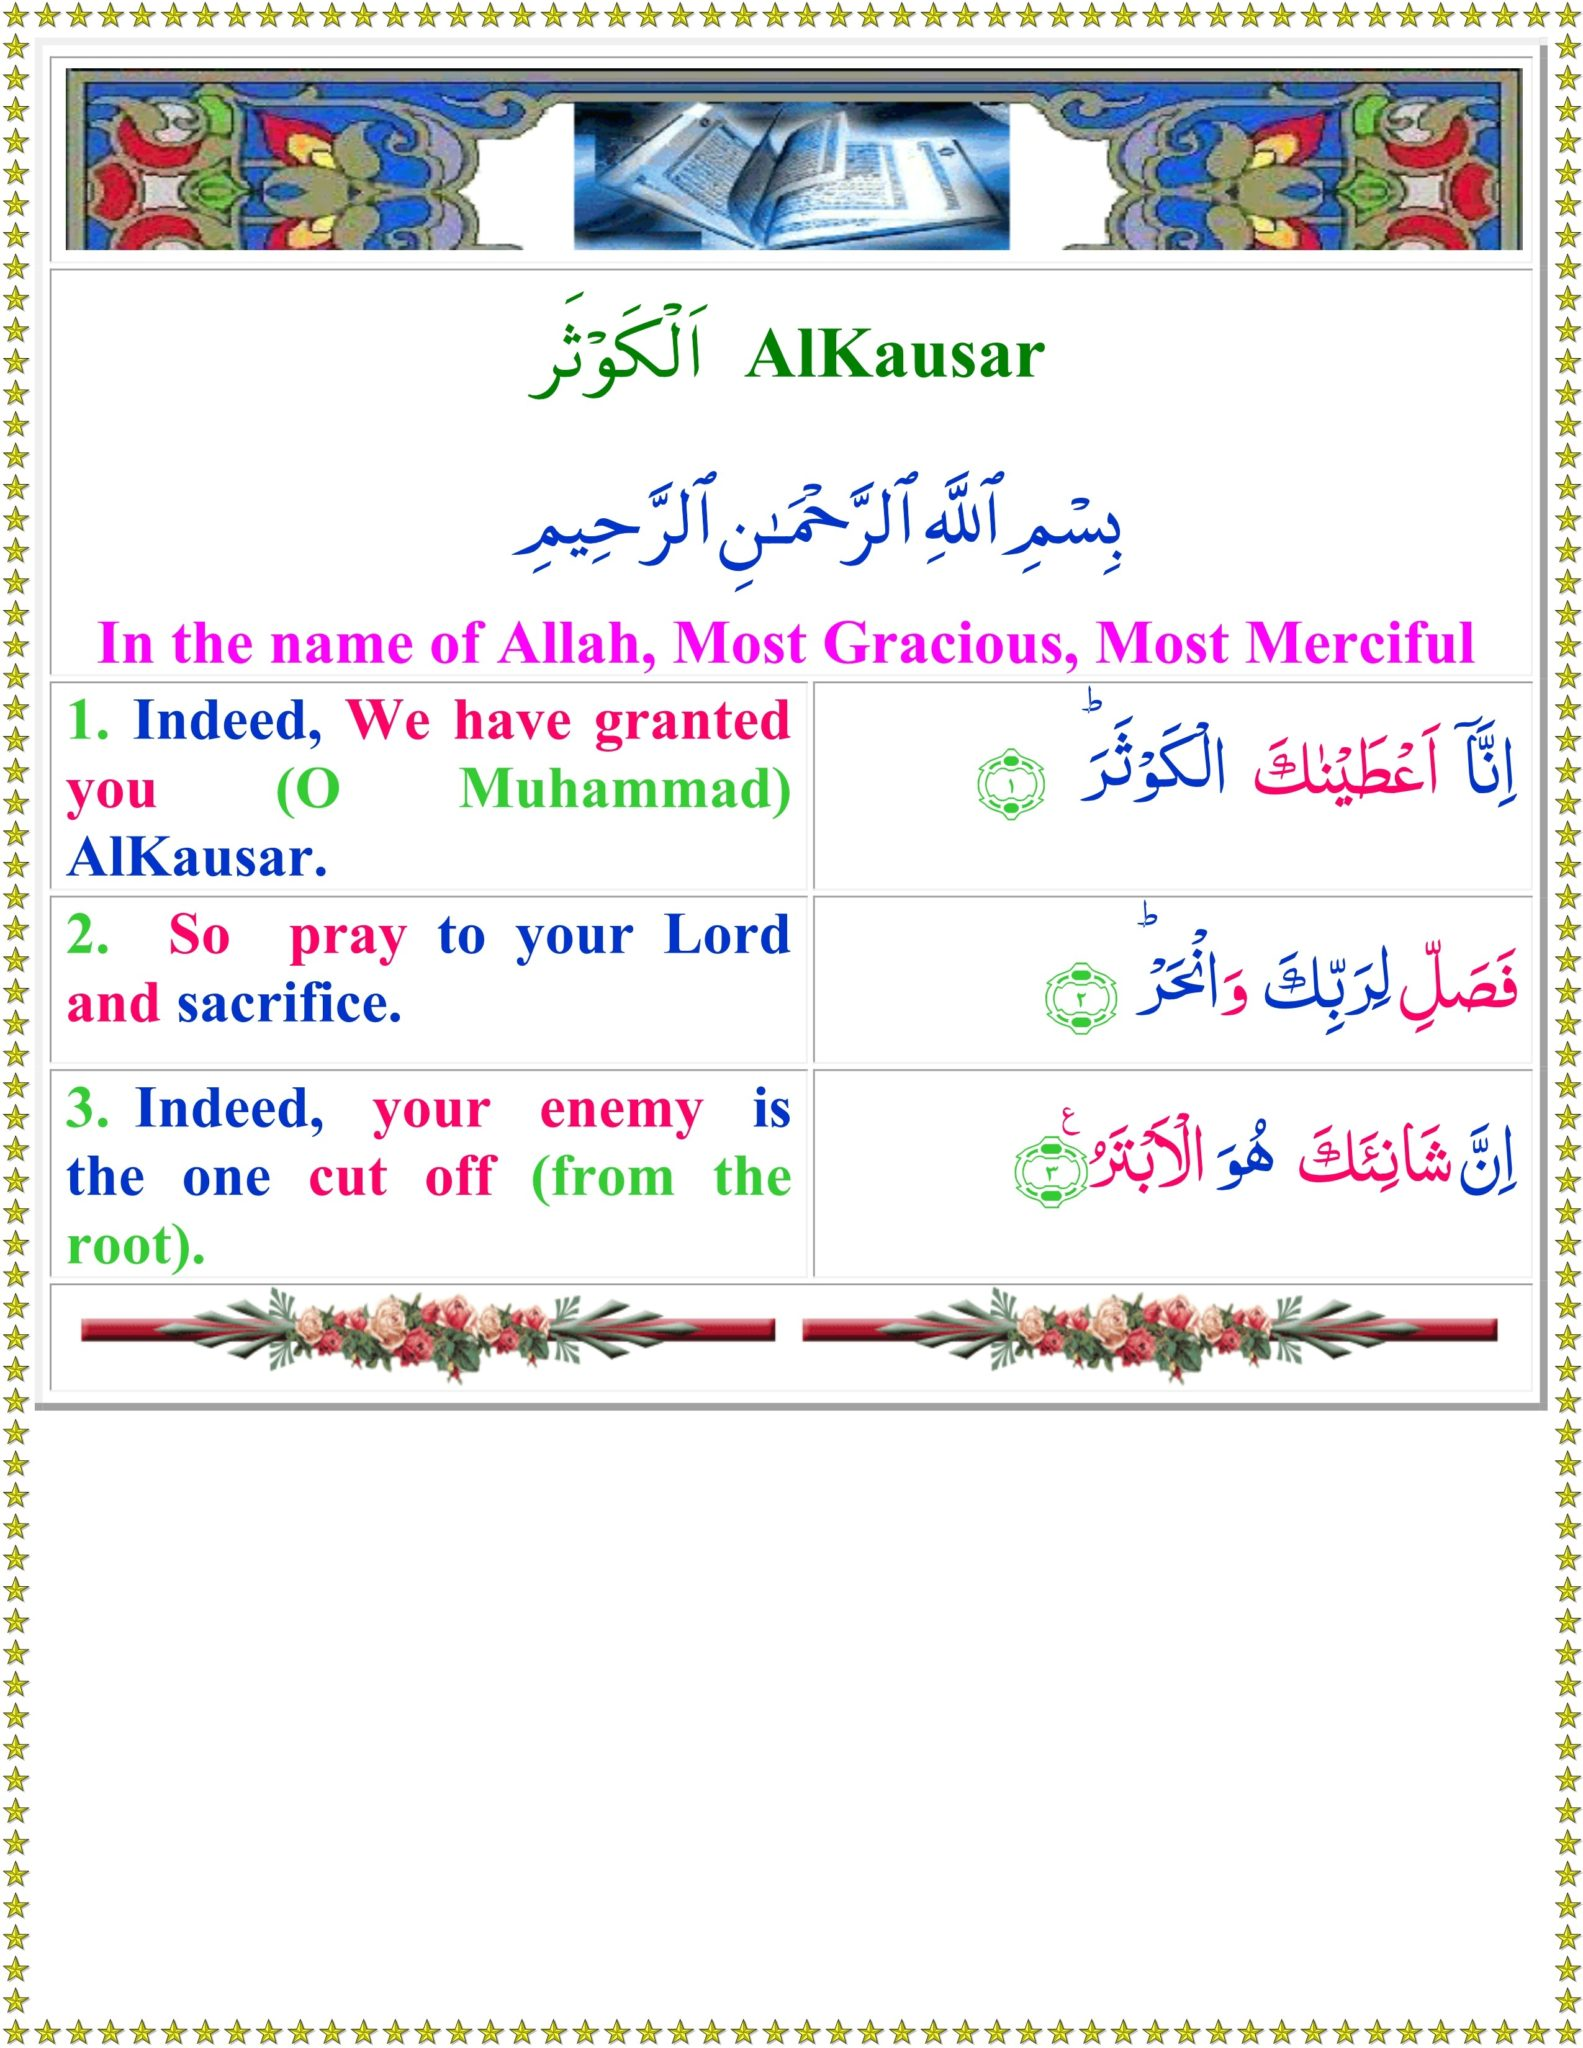 Surah Kausar translation in English